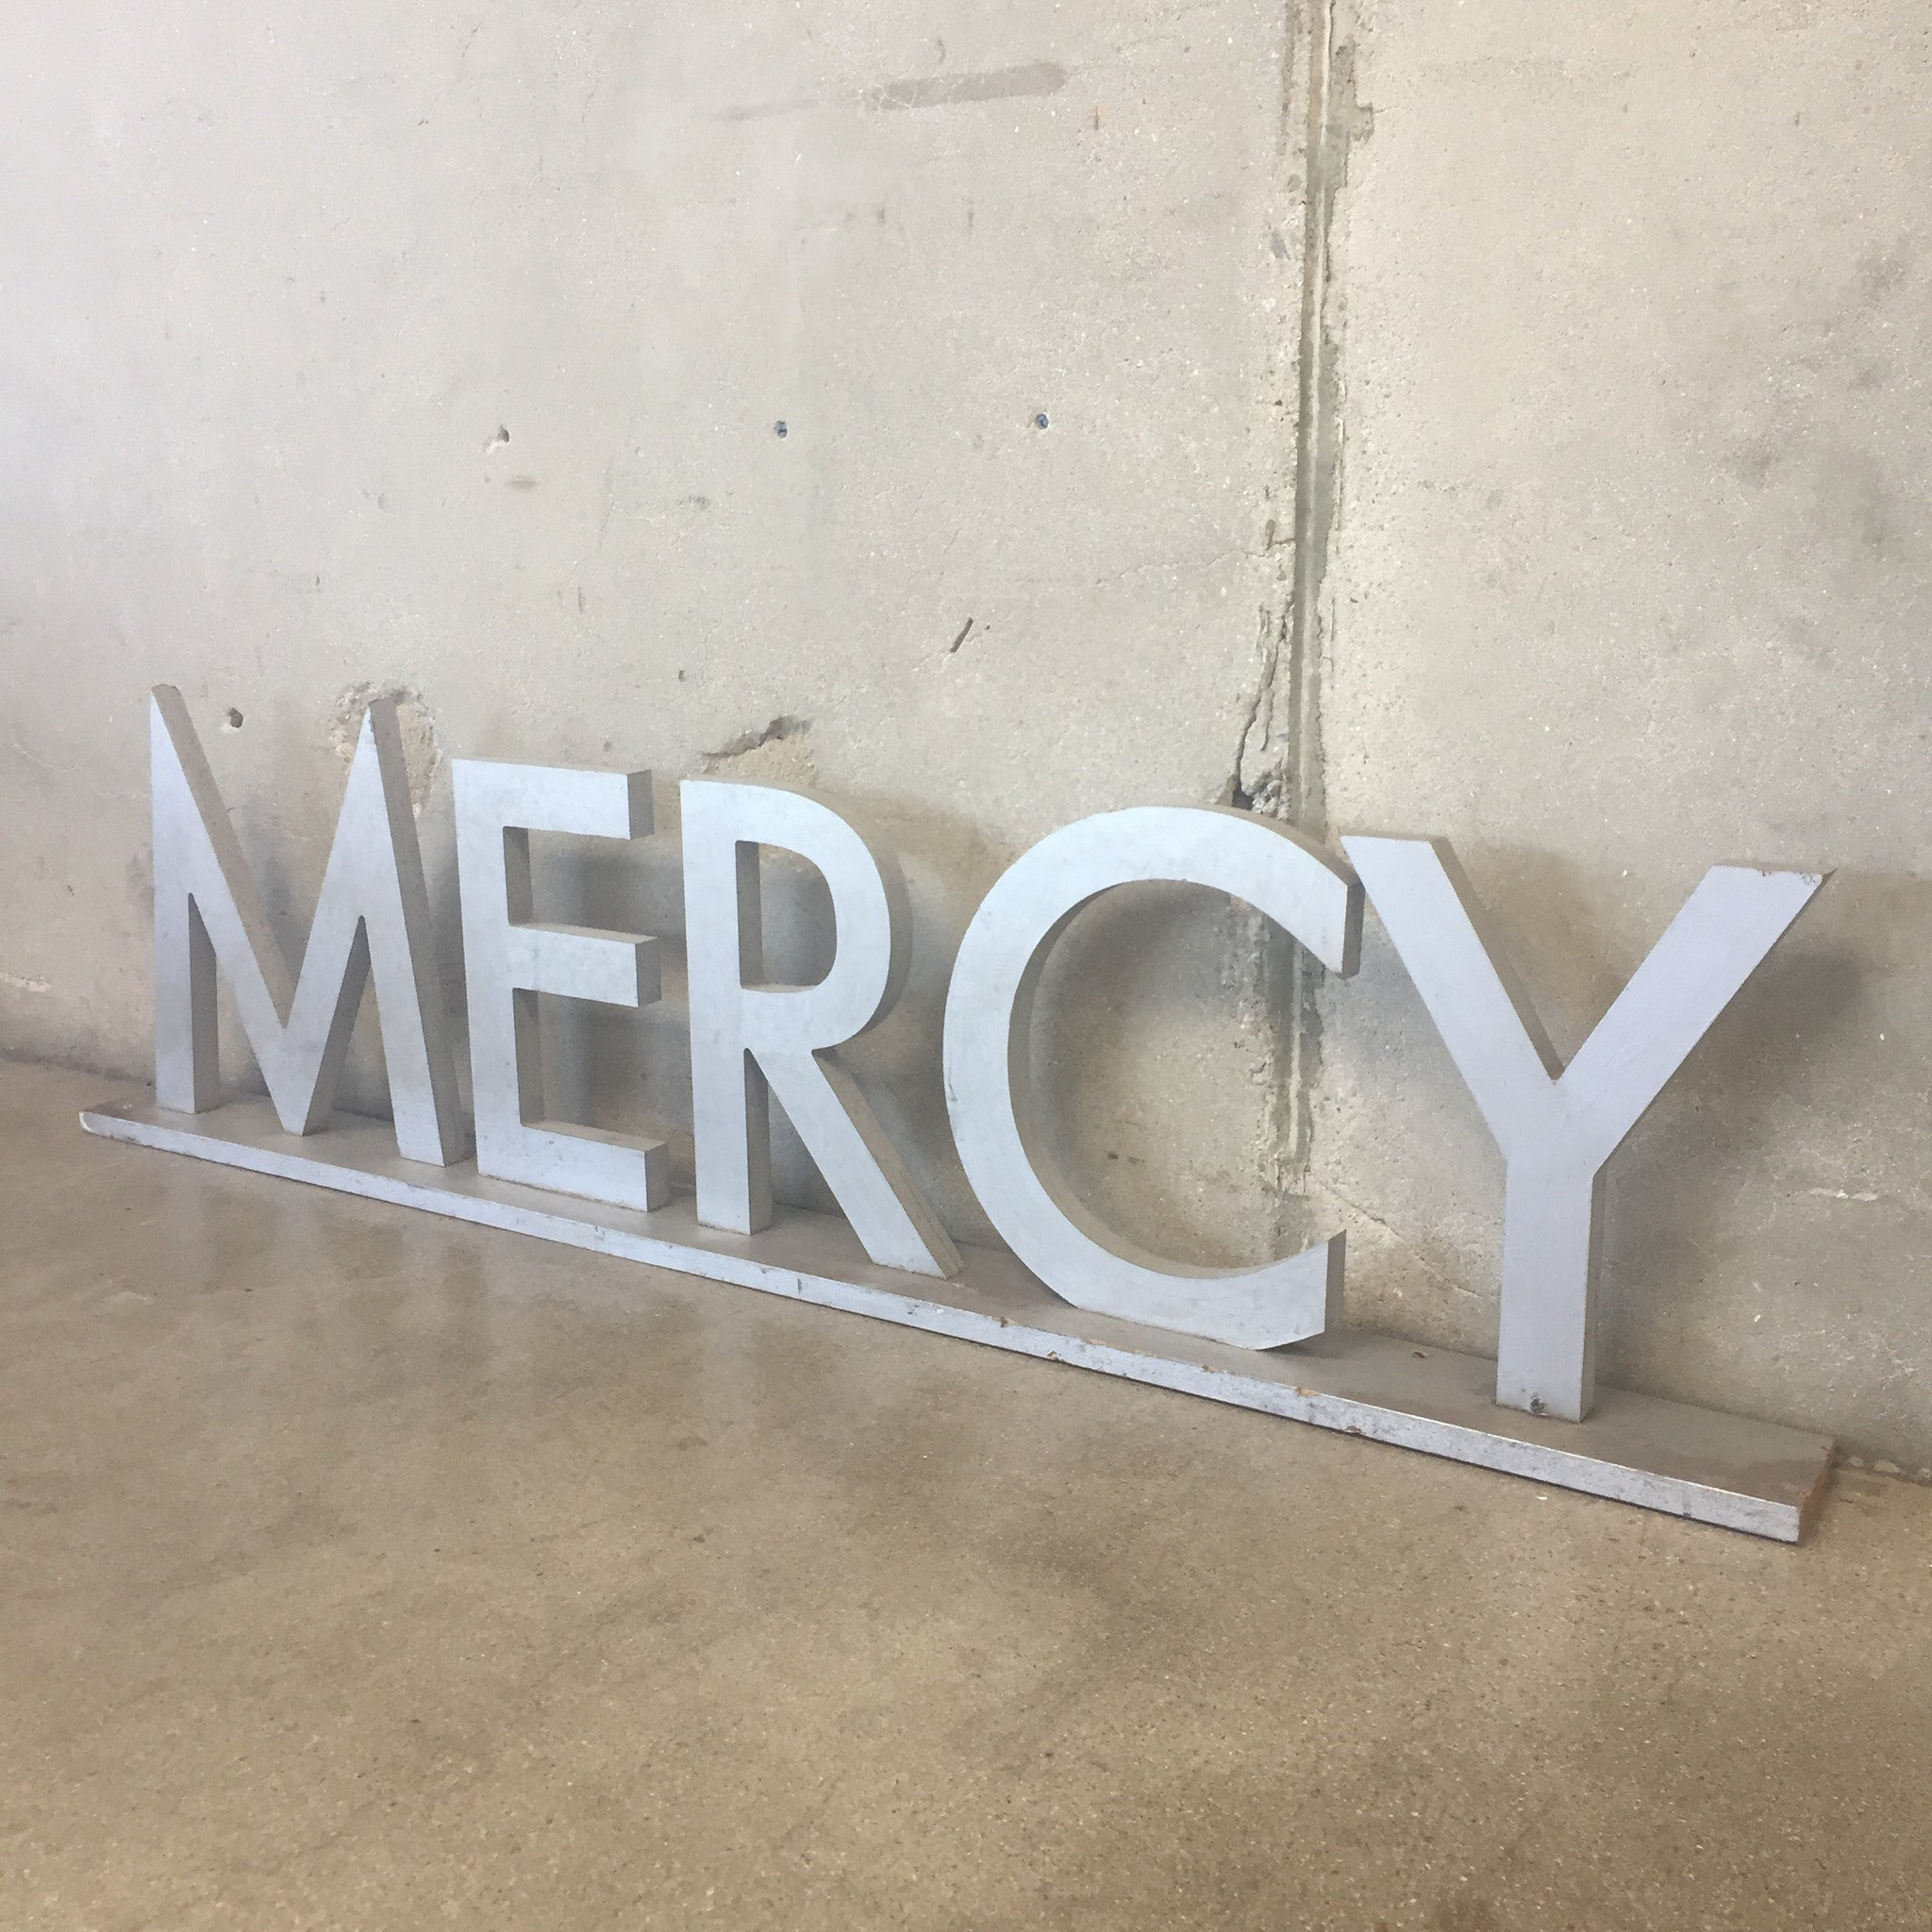 Quot Mercy Quot Sign From The Set Of Mercy Hospital Urbanamericana